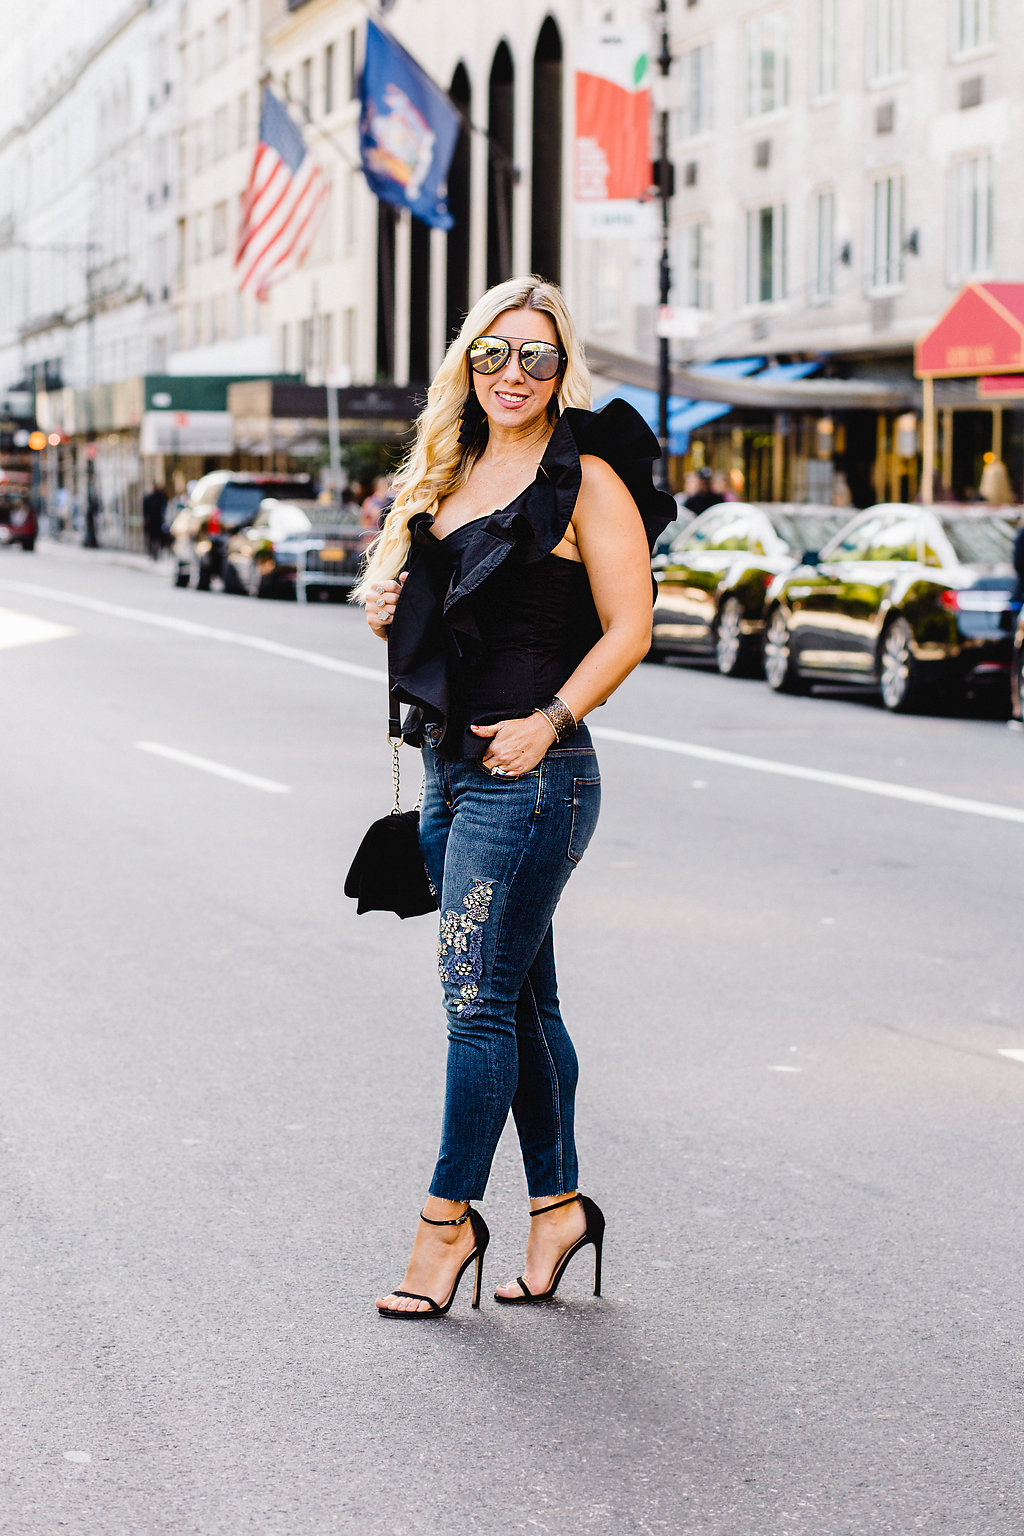 Embellished Jeans | New York Fashion Week | The Darling Petite Diva